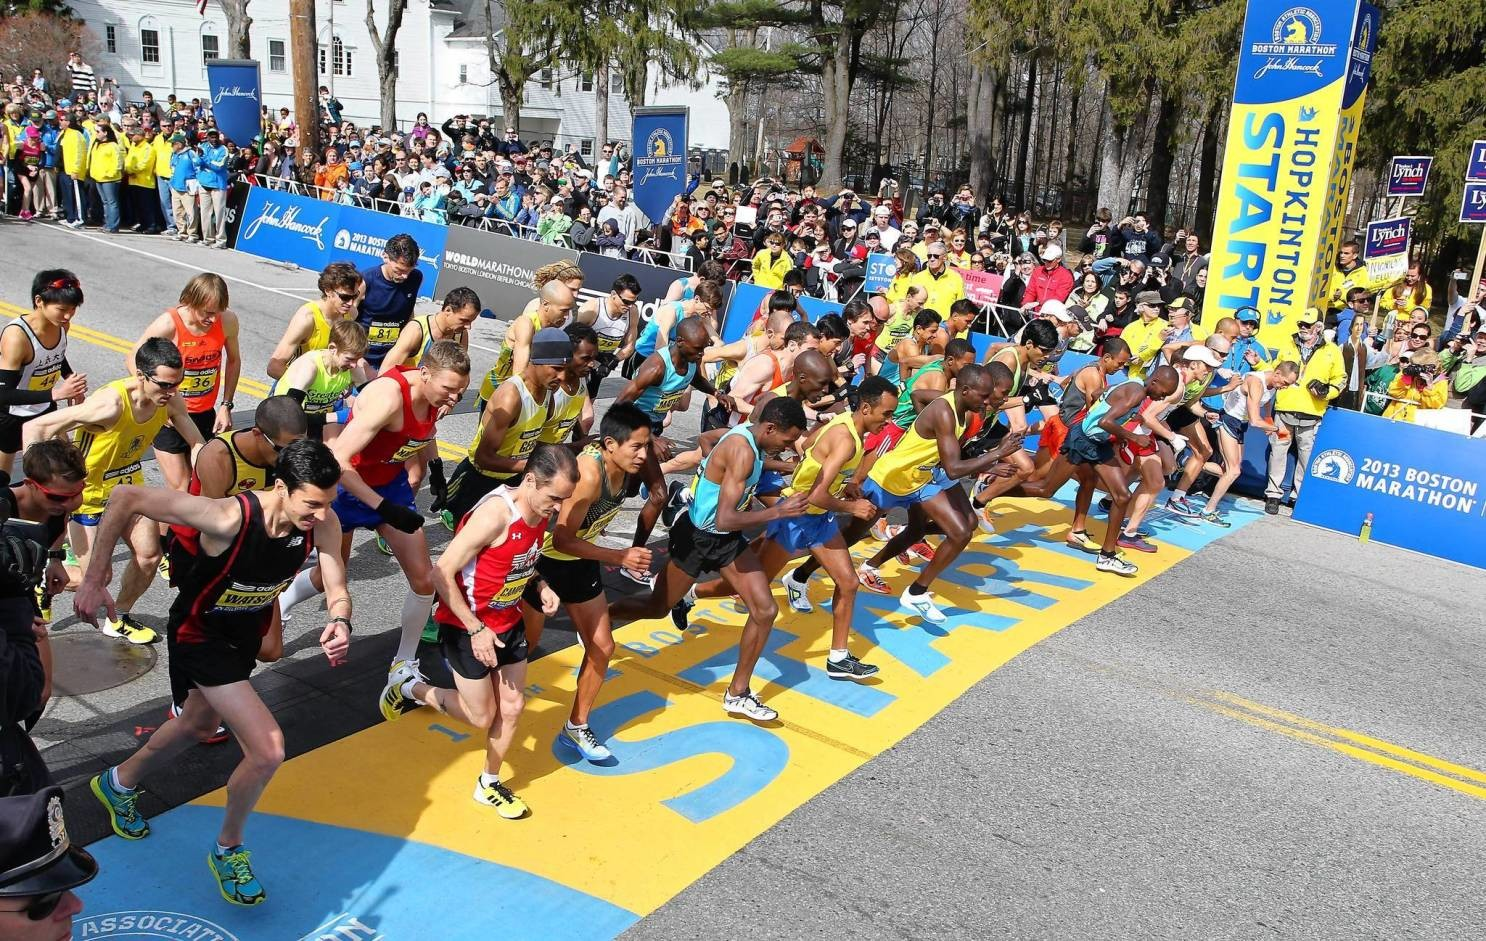 BAA to Decide in the next few weeks whether to hold the 2021 Boston Marathon on its traditional date in April, or whether to again postpone the event until later in the year